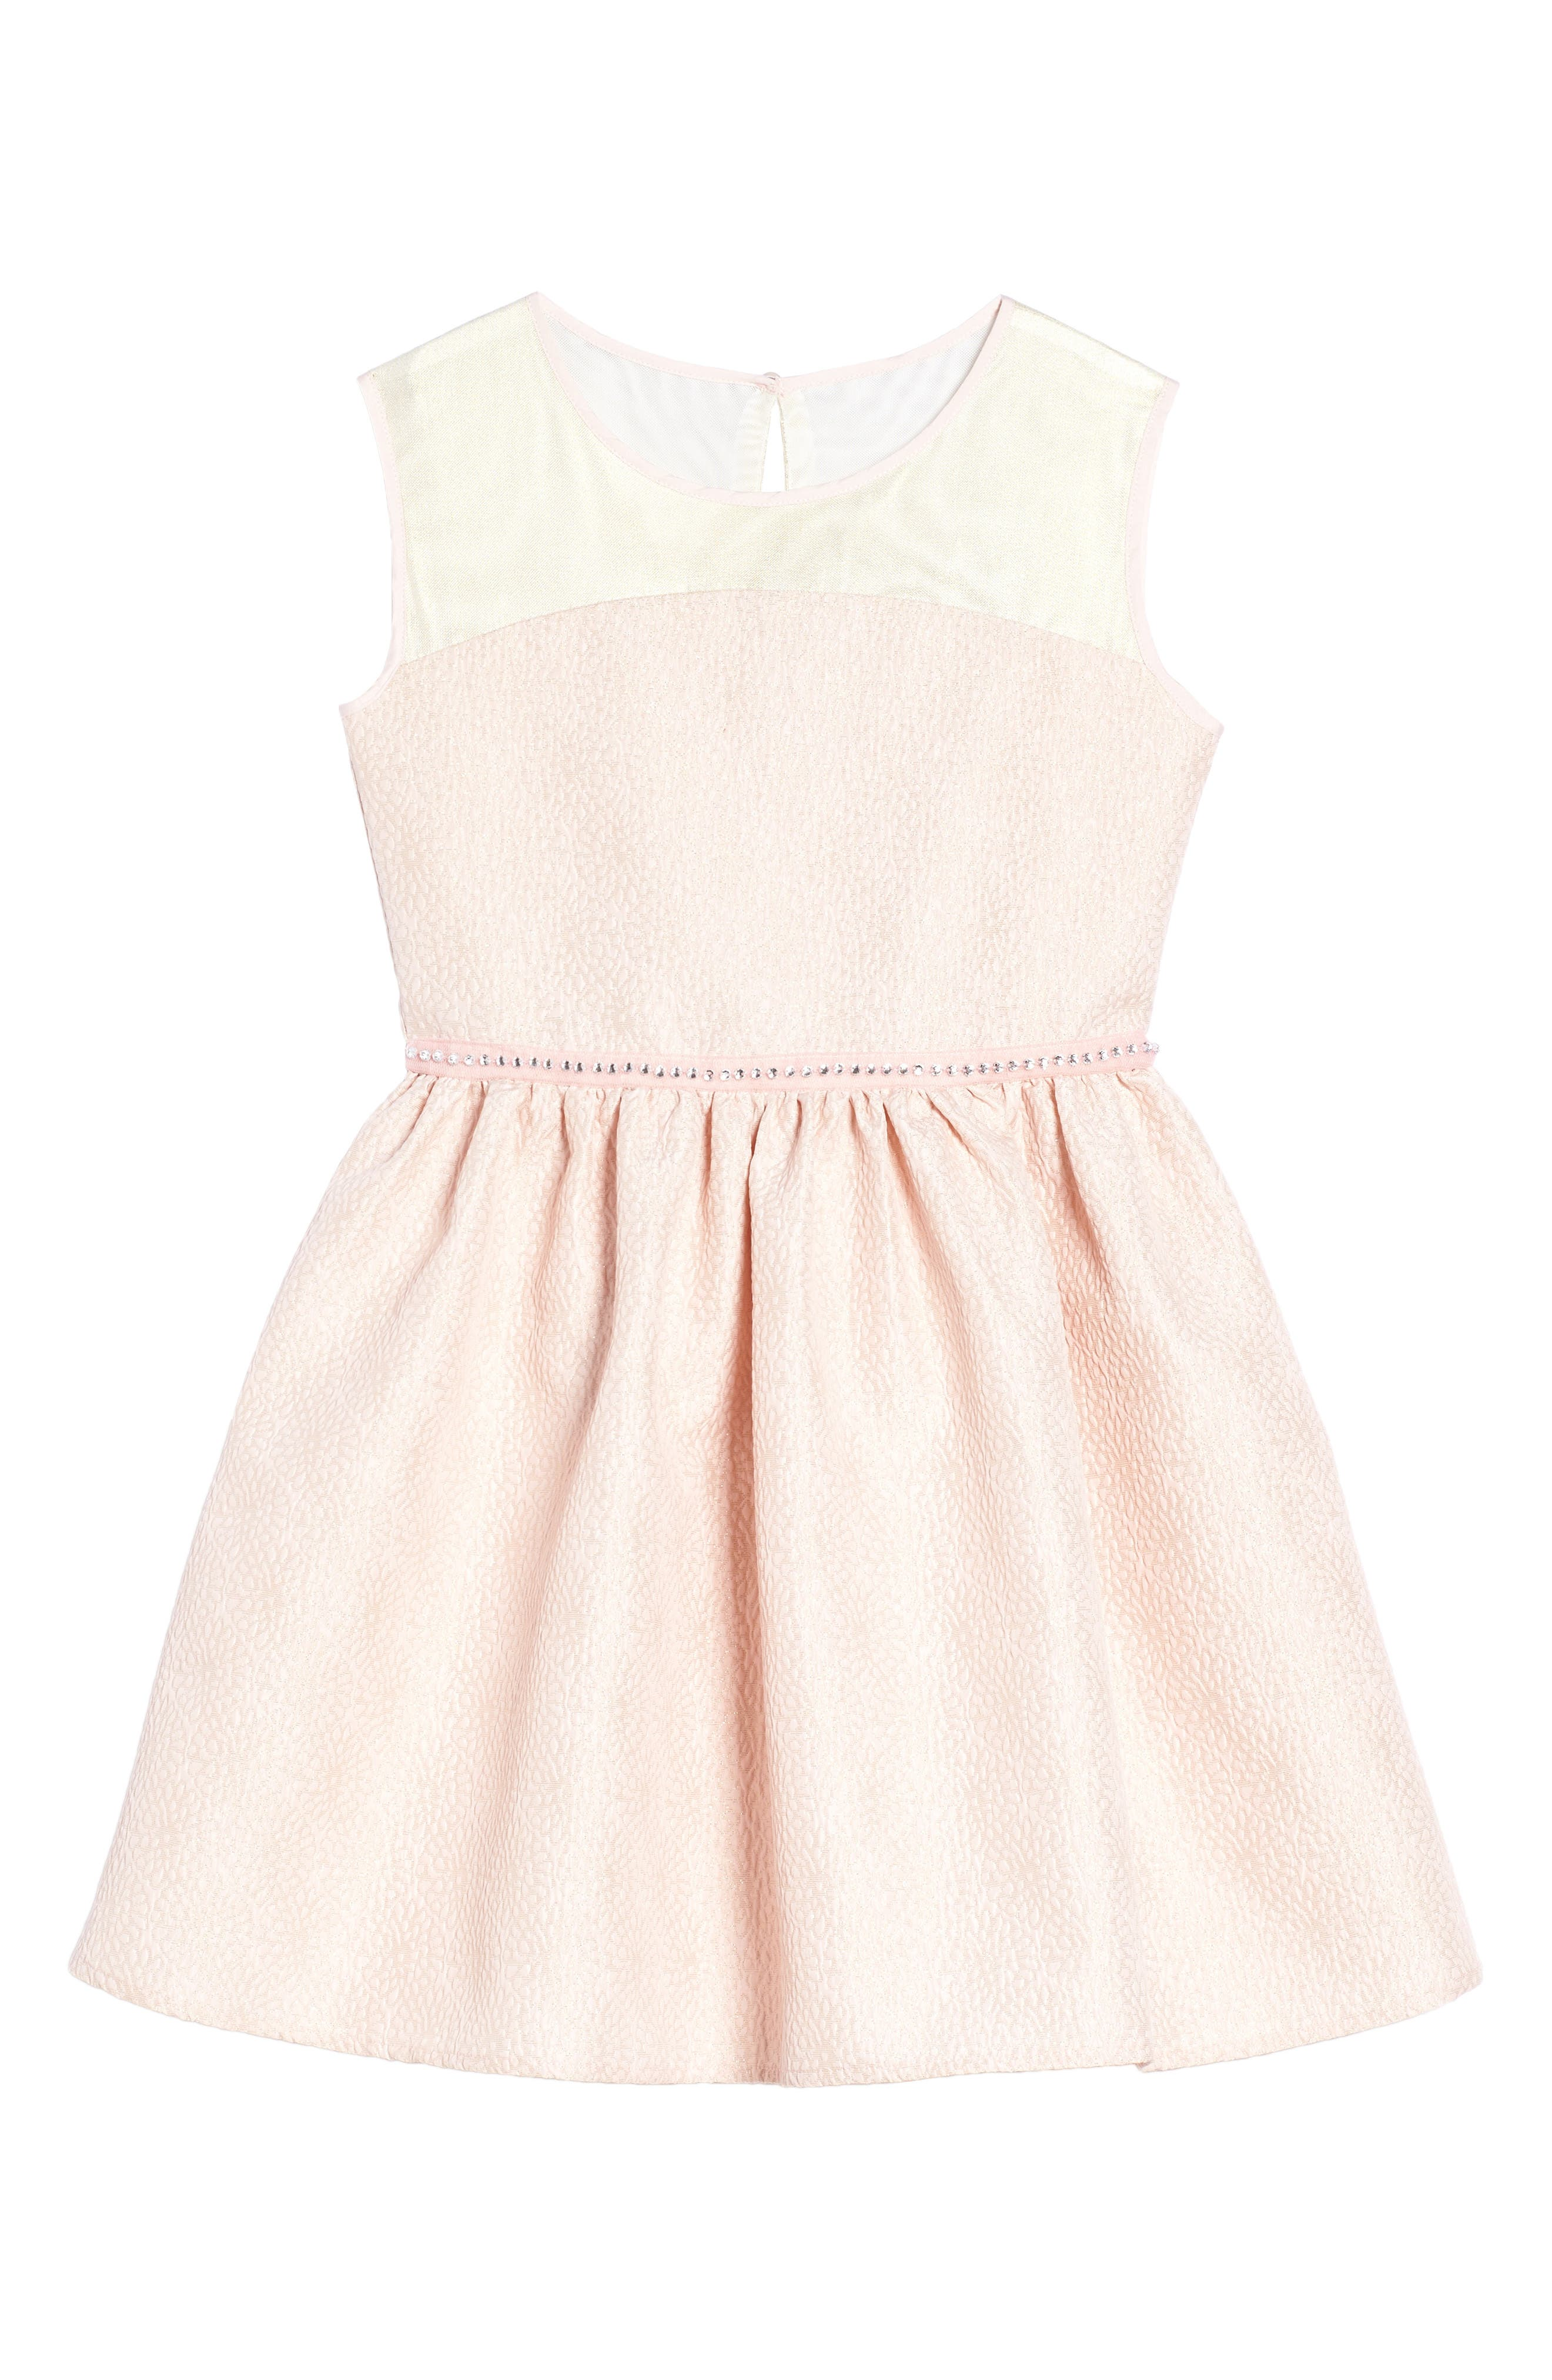 Fit & Flare Dress,                             Main thumbnail 1, color,                             Pink